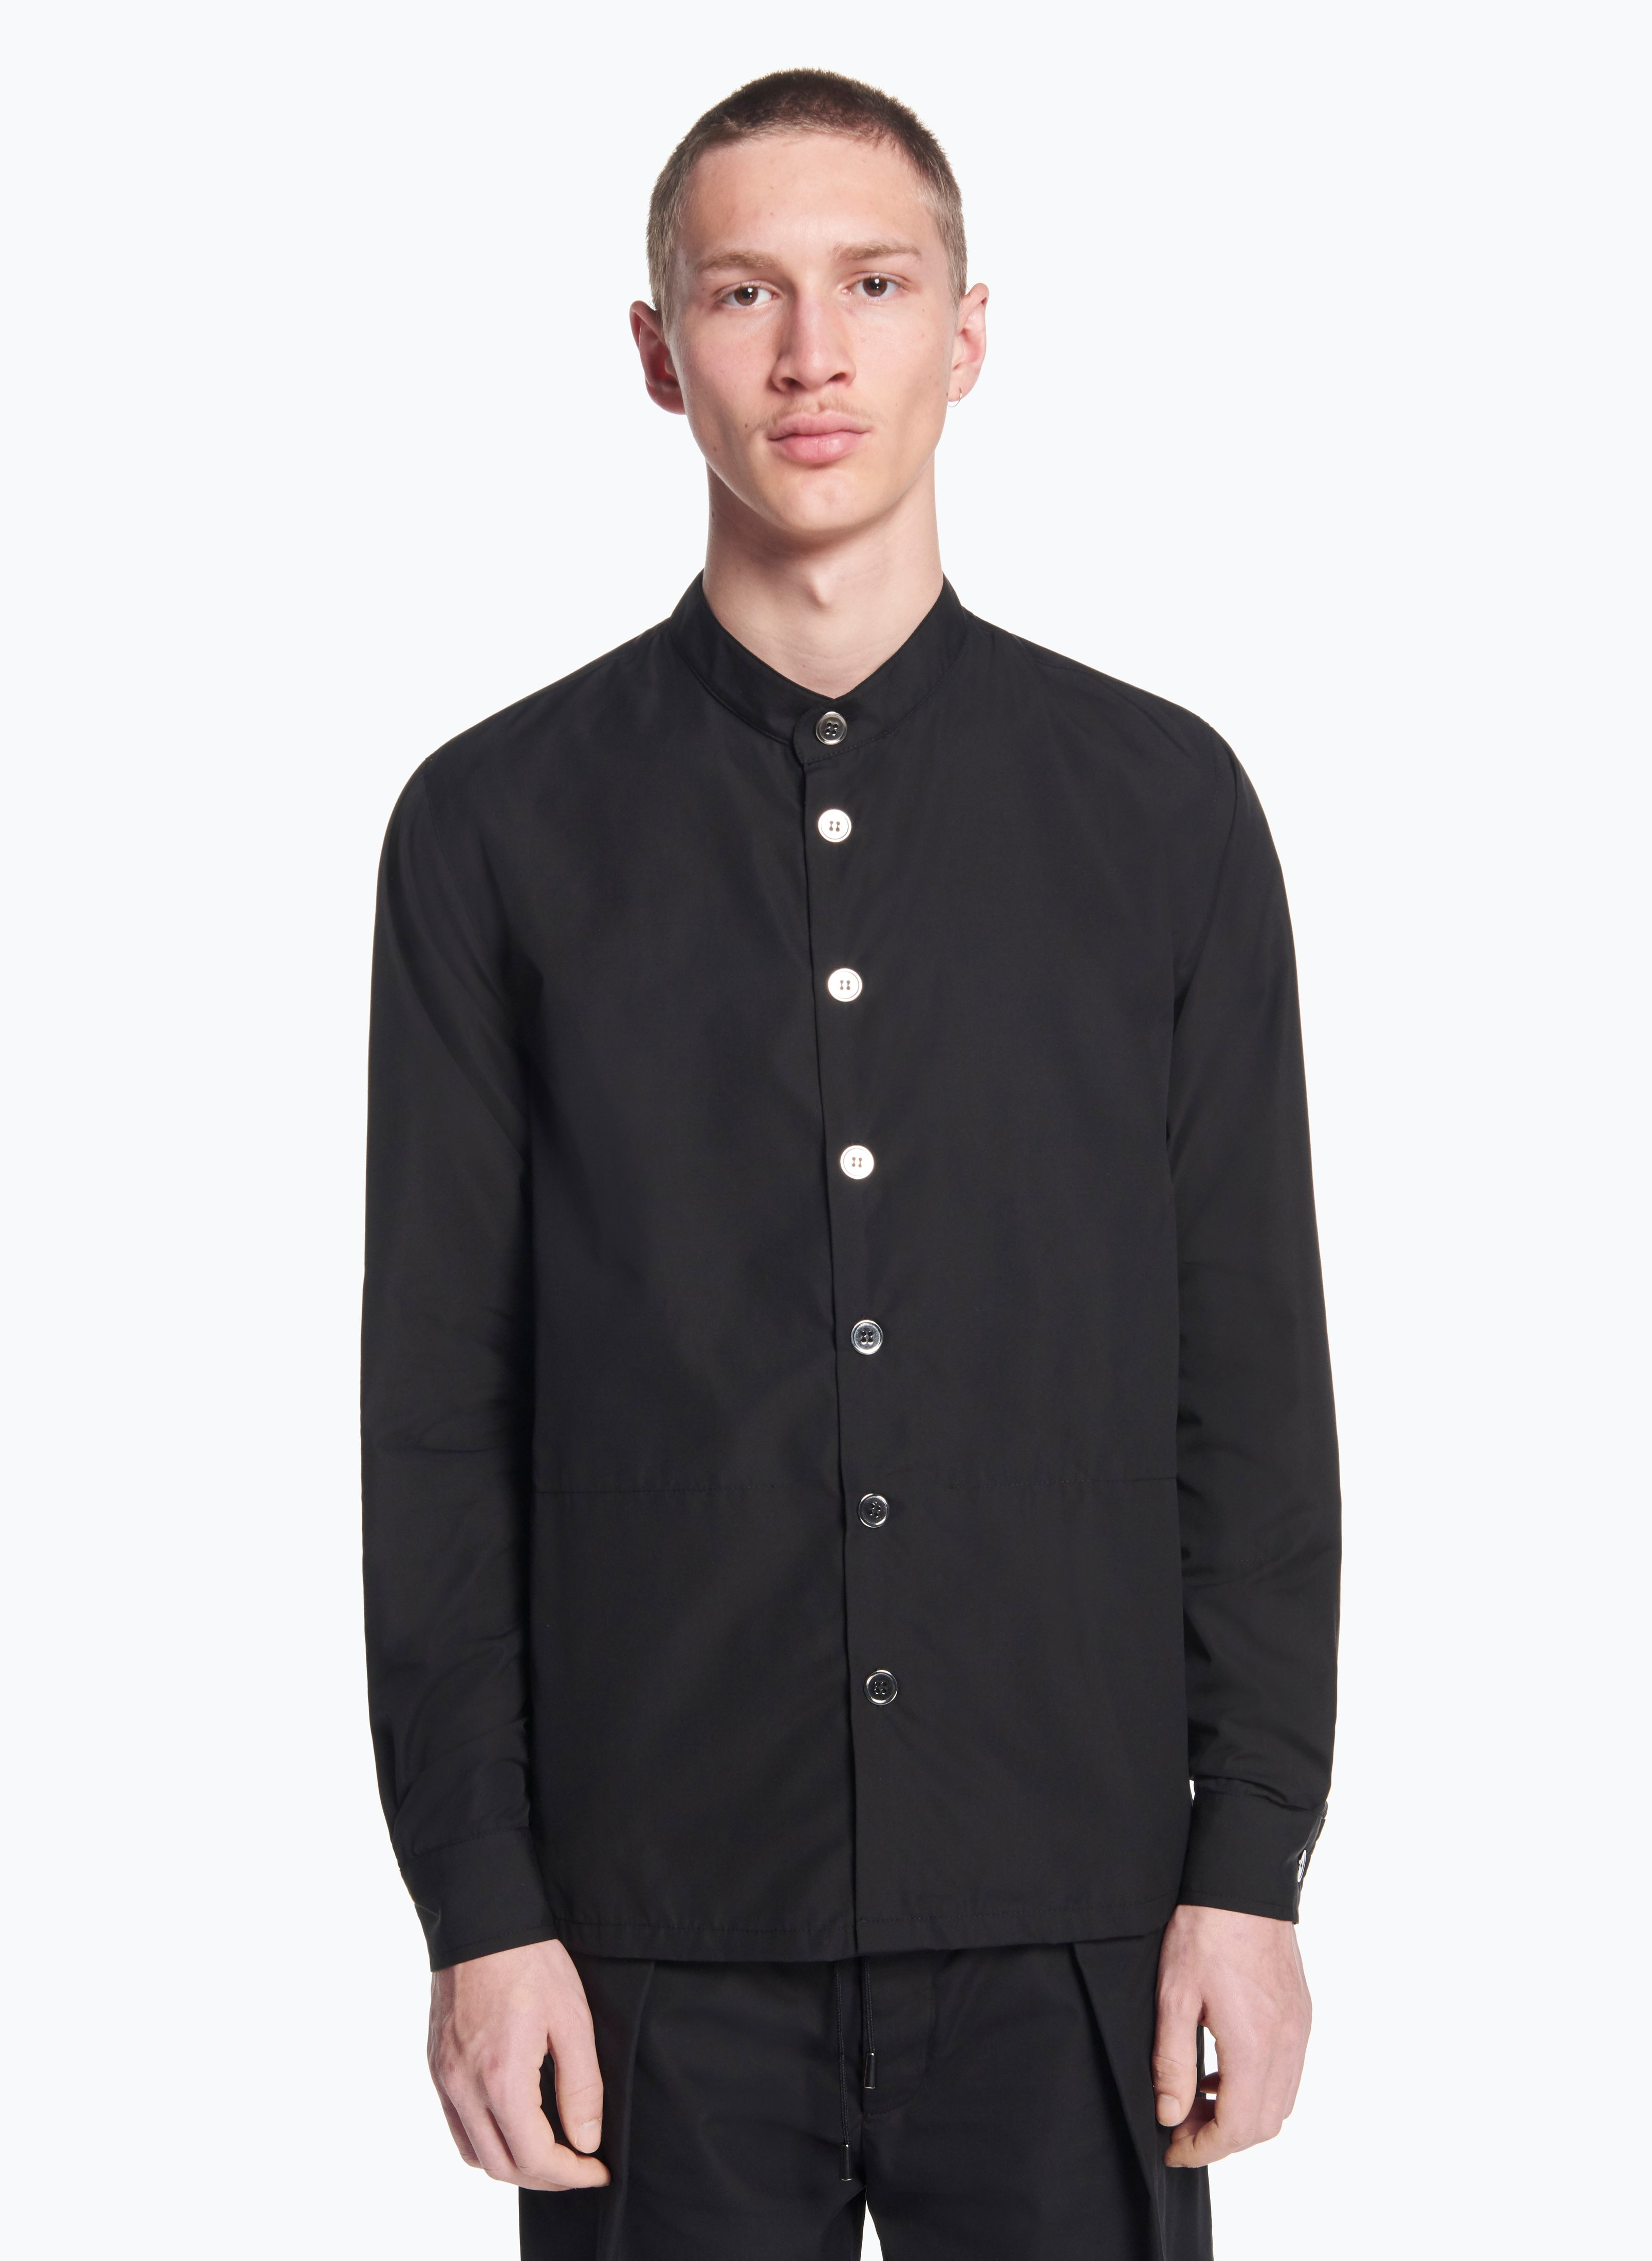 Mandarin Collar Overshirt in Black Poplin